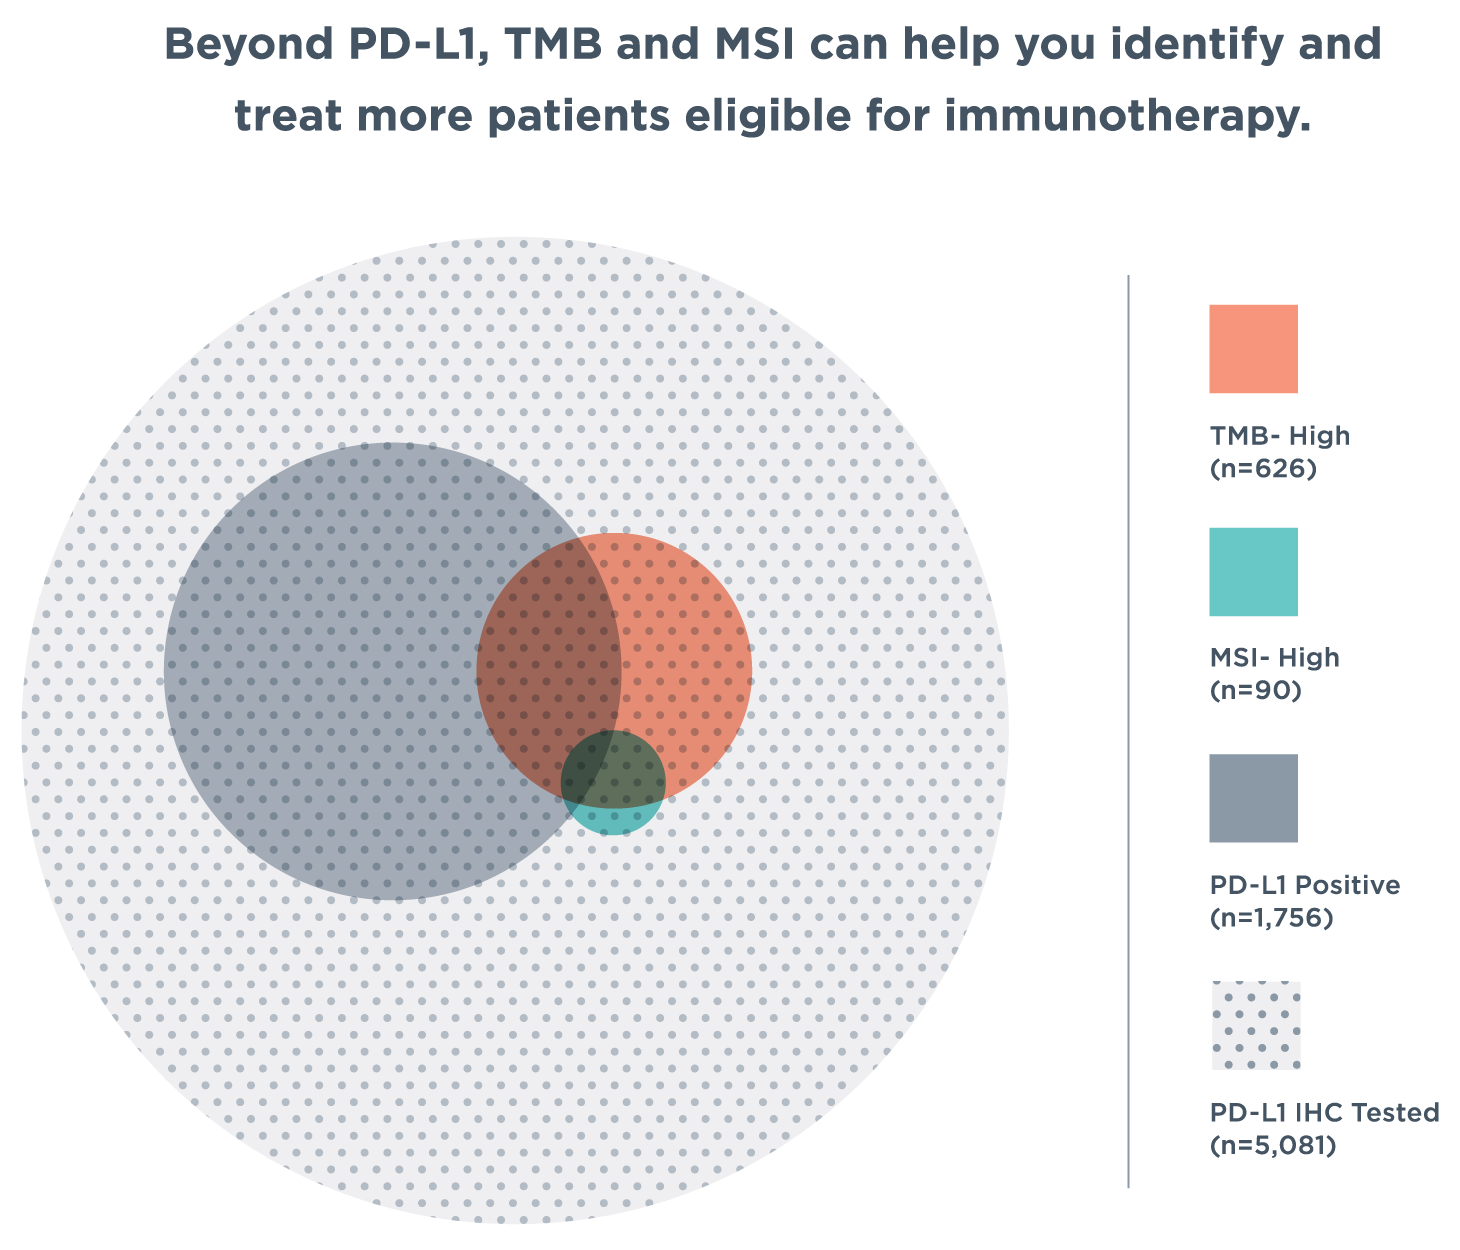 Diagram with overlapping circles showing that there are people who test negative for PD-L1 but are MSI-high or have elevated TMB